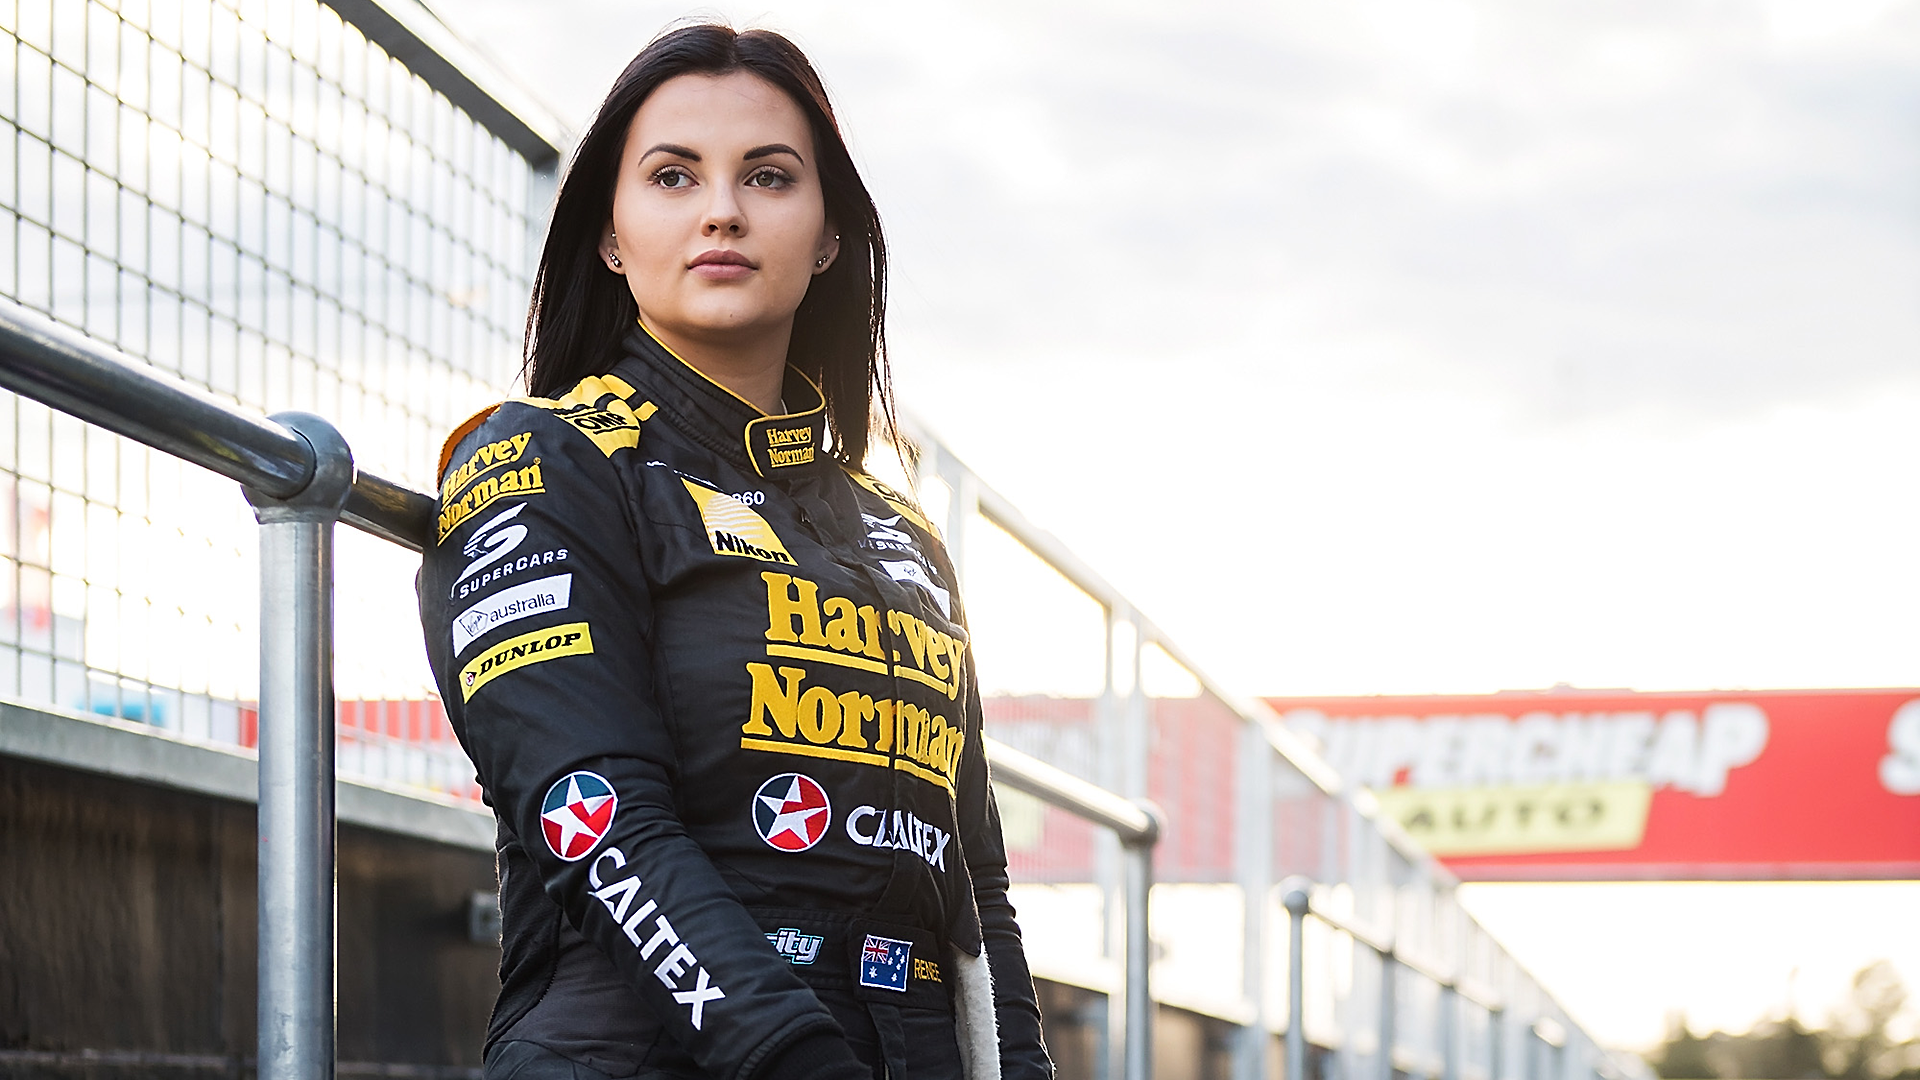 Racing prodigy Renee Gracie went from $0 to $90K a month doing ...